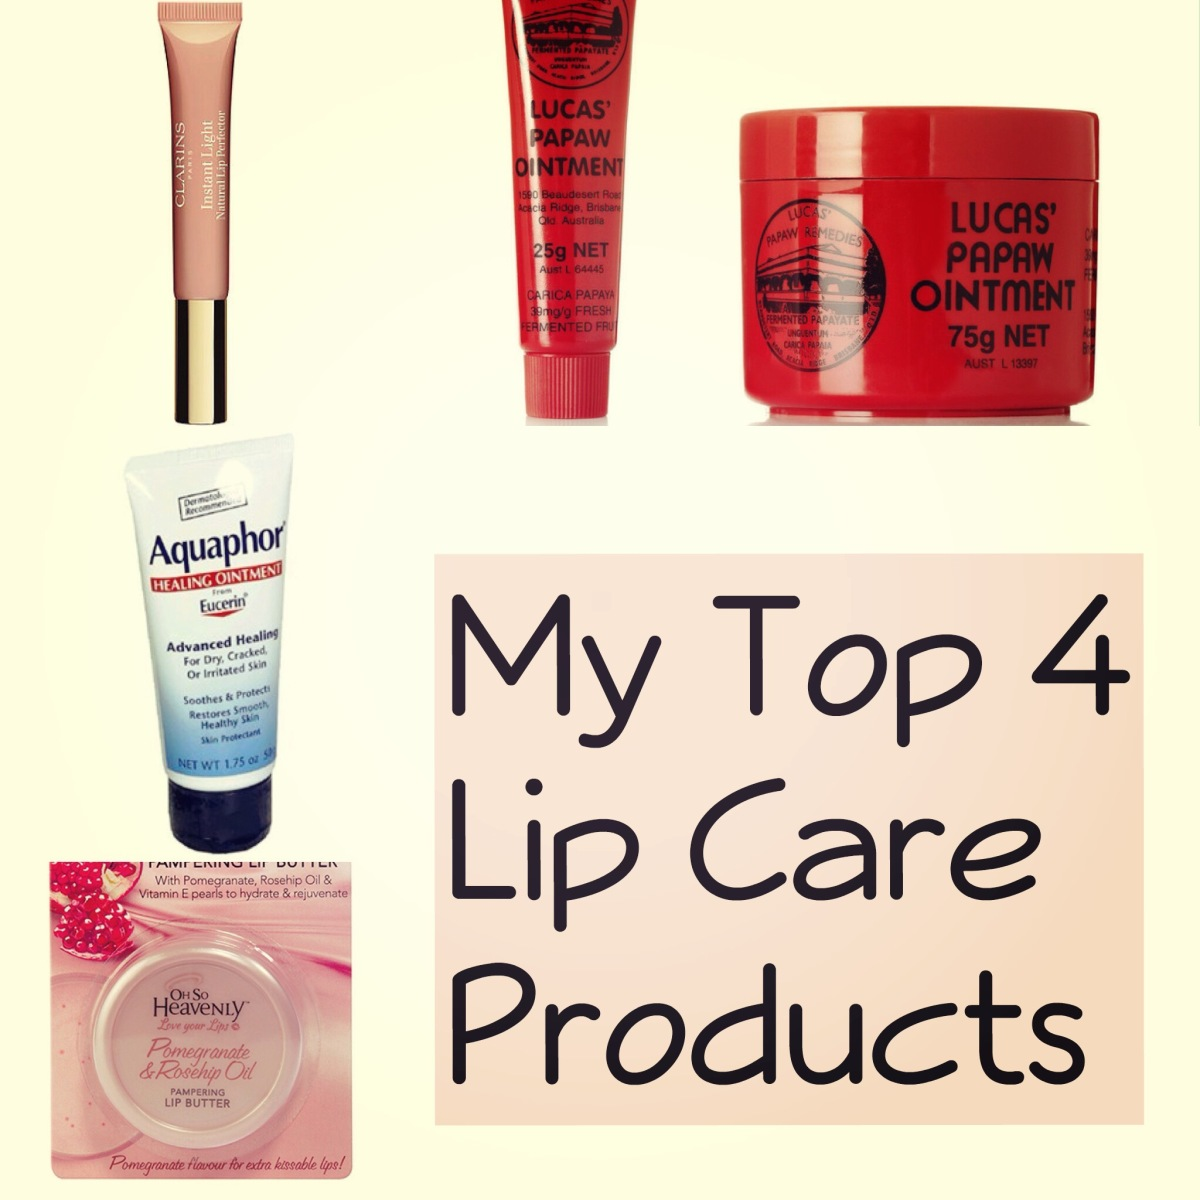 My Top 4 Lip Care Products